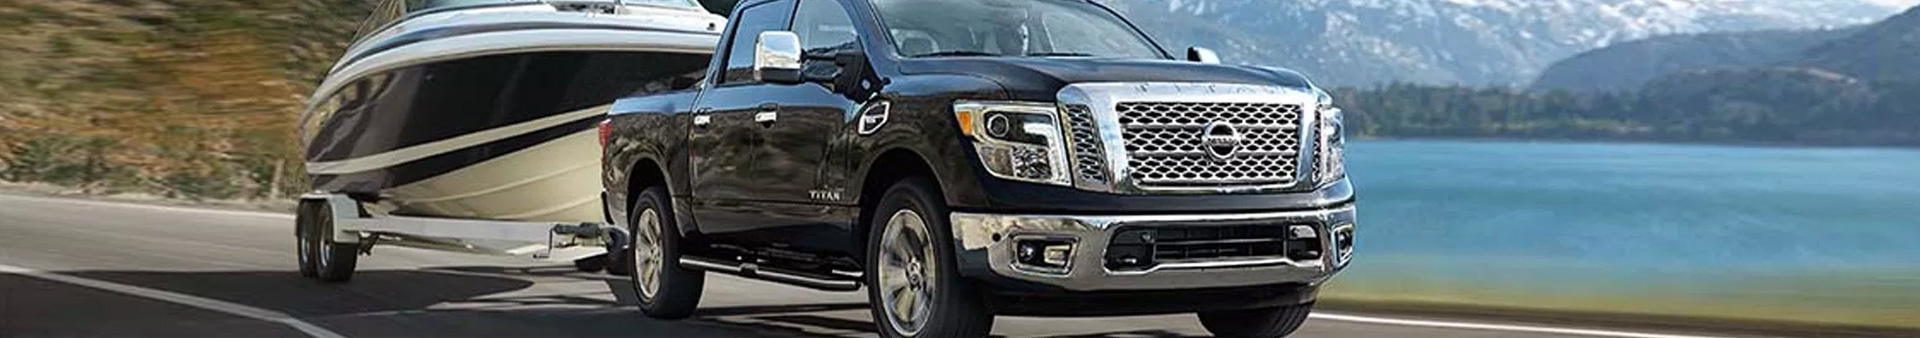 2017_Nissan_Titan Towing